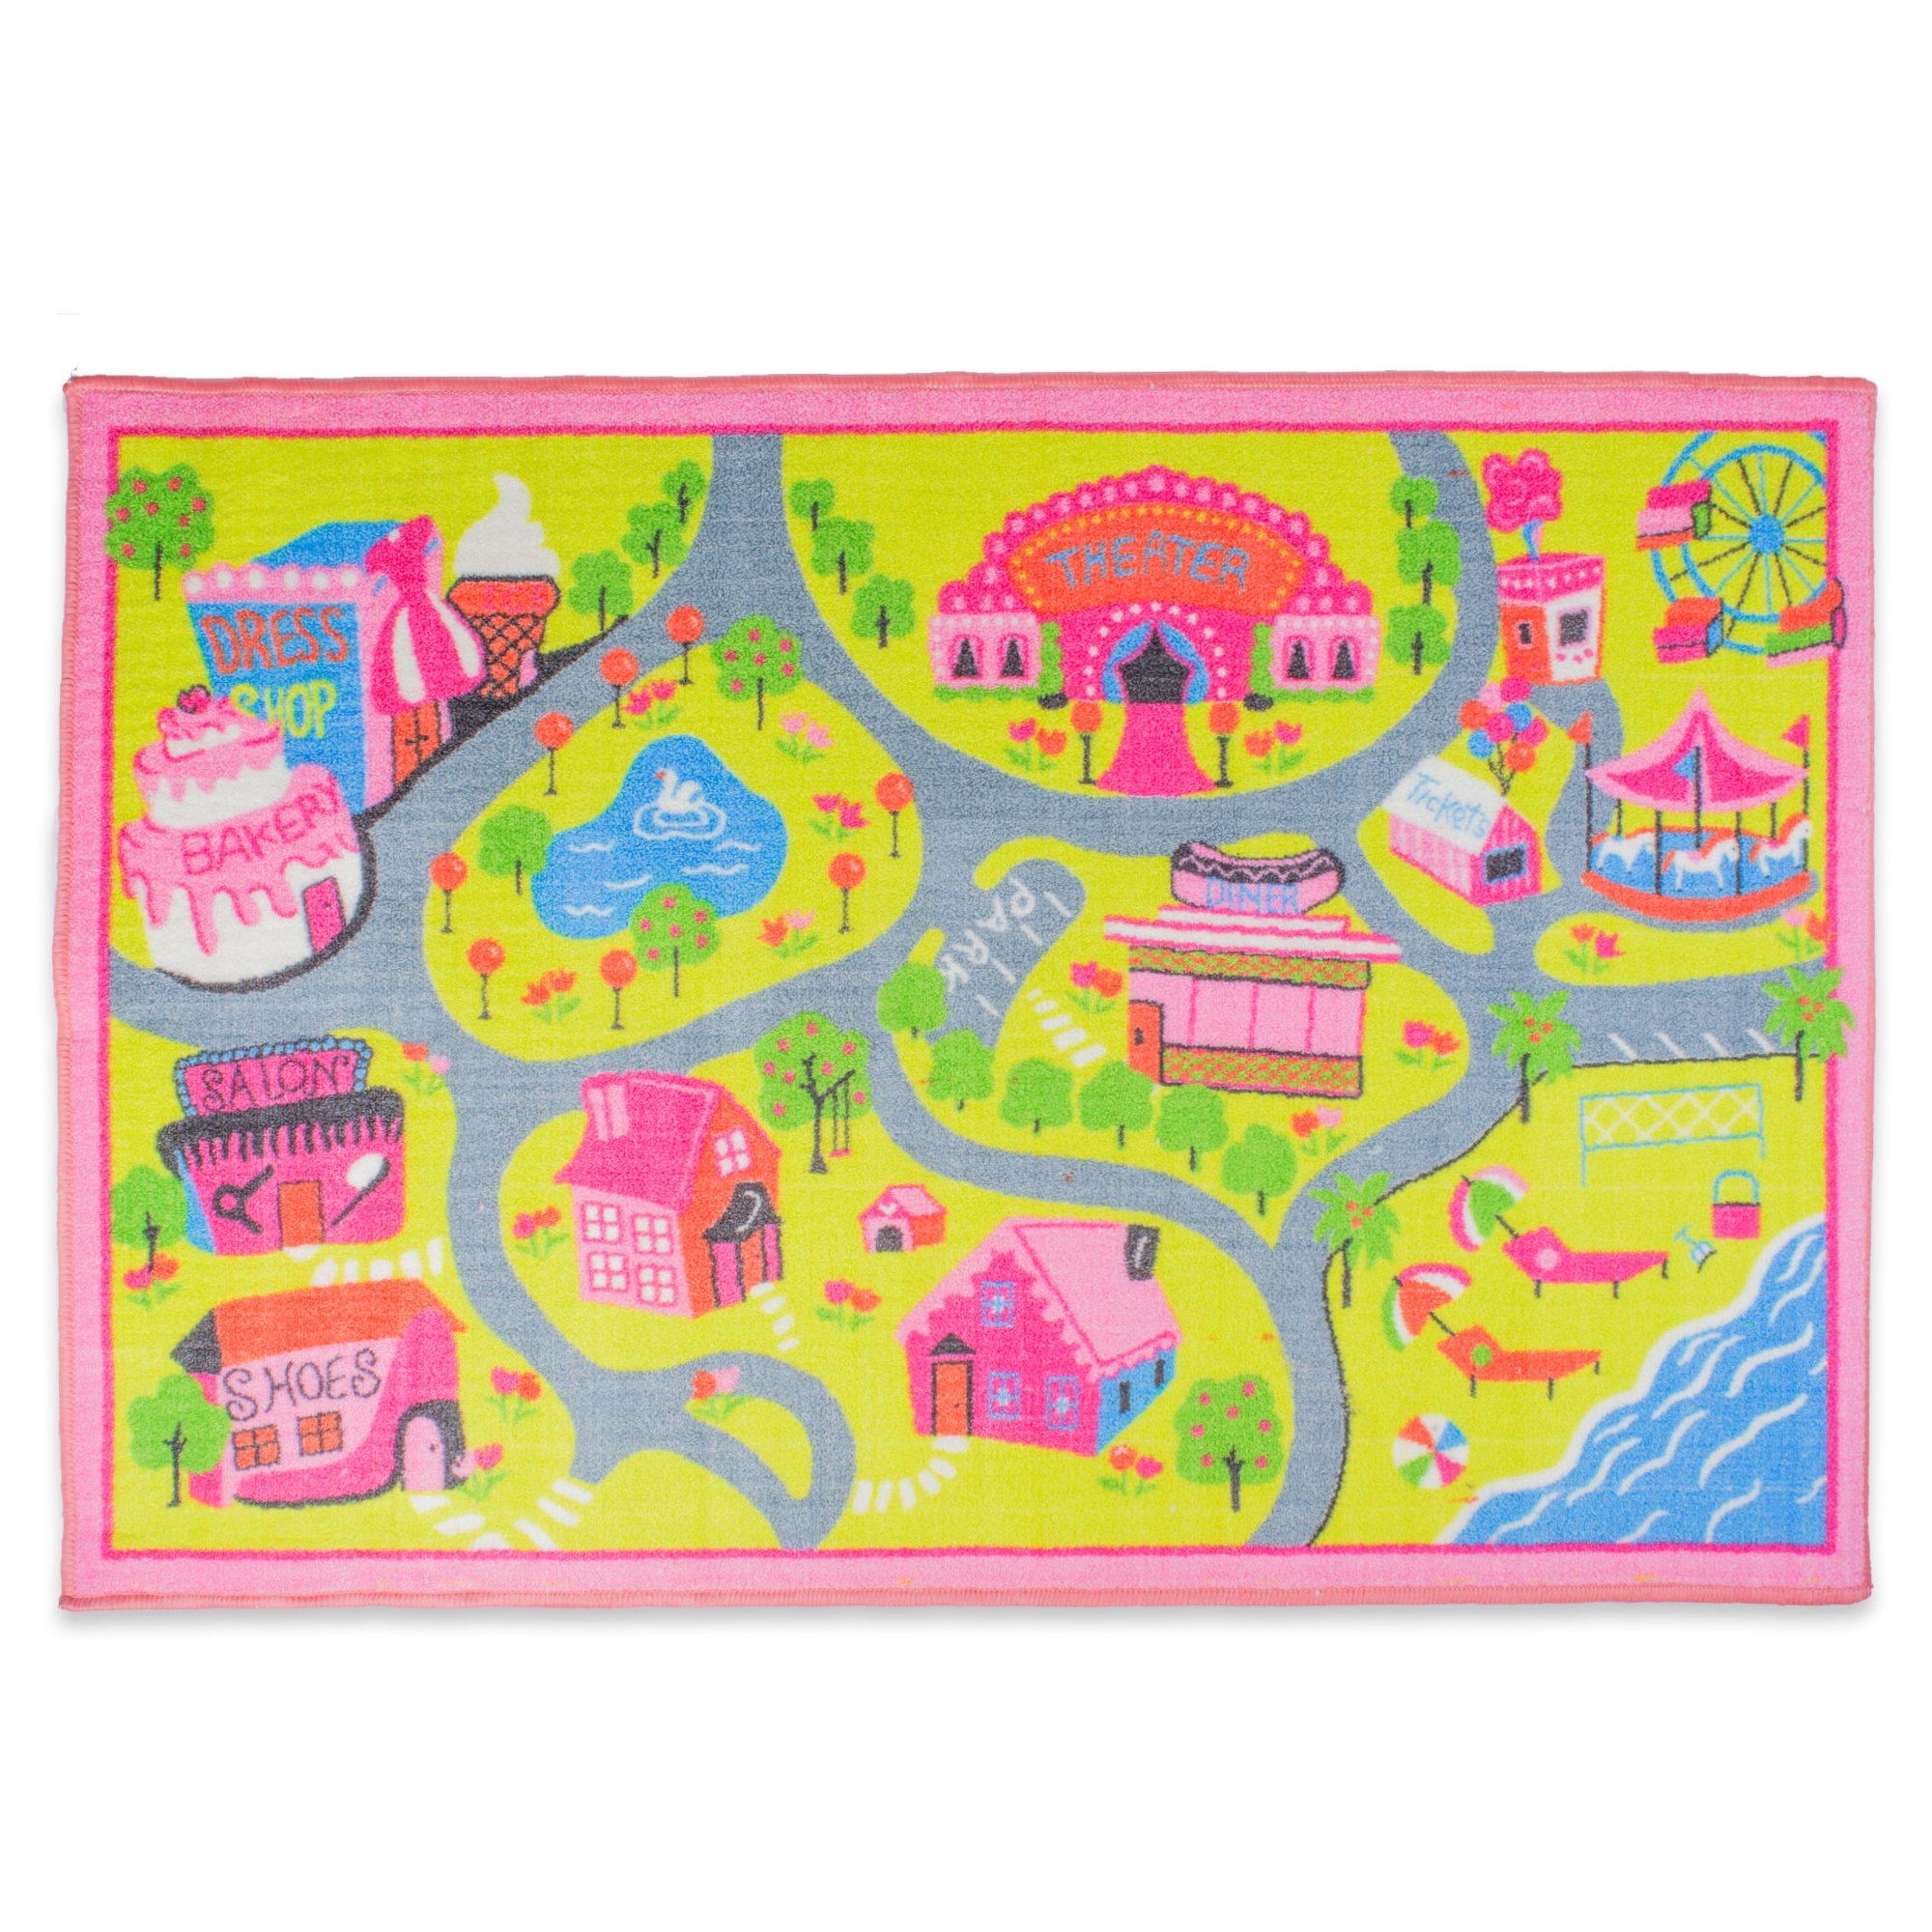 Playmat Play Rug Educational Area Rug for Kids, Babt, Toddler, 40x60'', Perfect Carpet for Children Bedroom, Playroom, Nursery room, and Game room-Town Fun by J & M Home Fashions